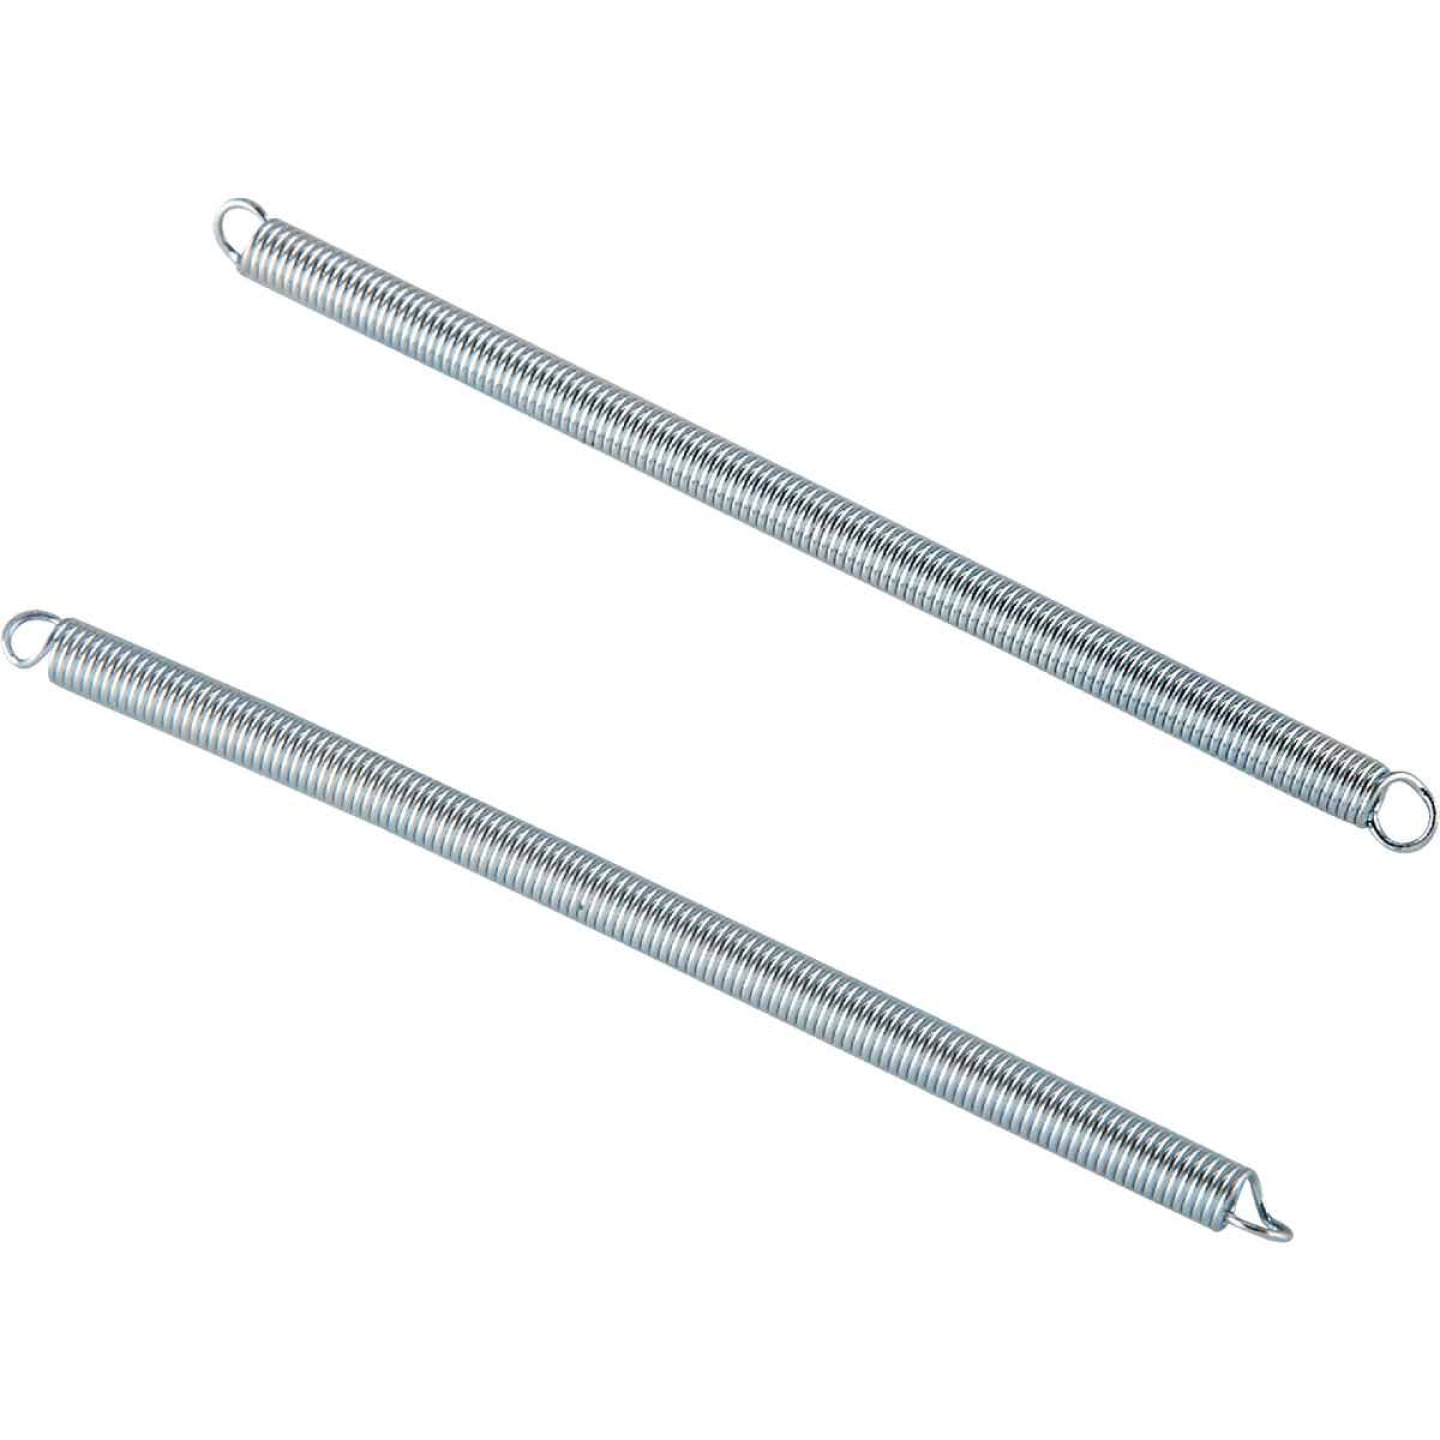 Century Spring 3-1/8 In. x 3/4 In. Extension Spring (2 Count) Image 1